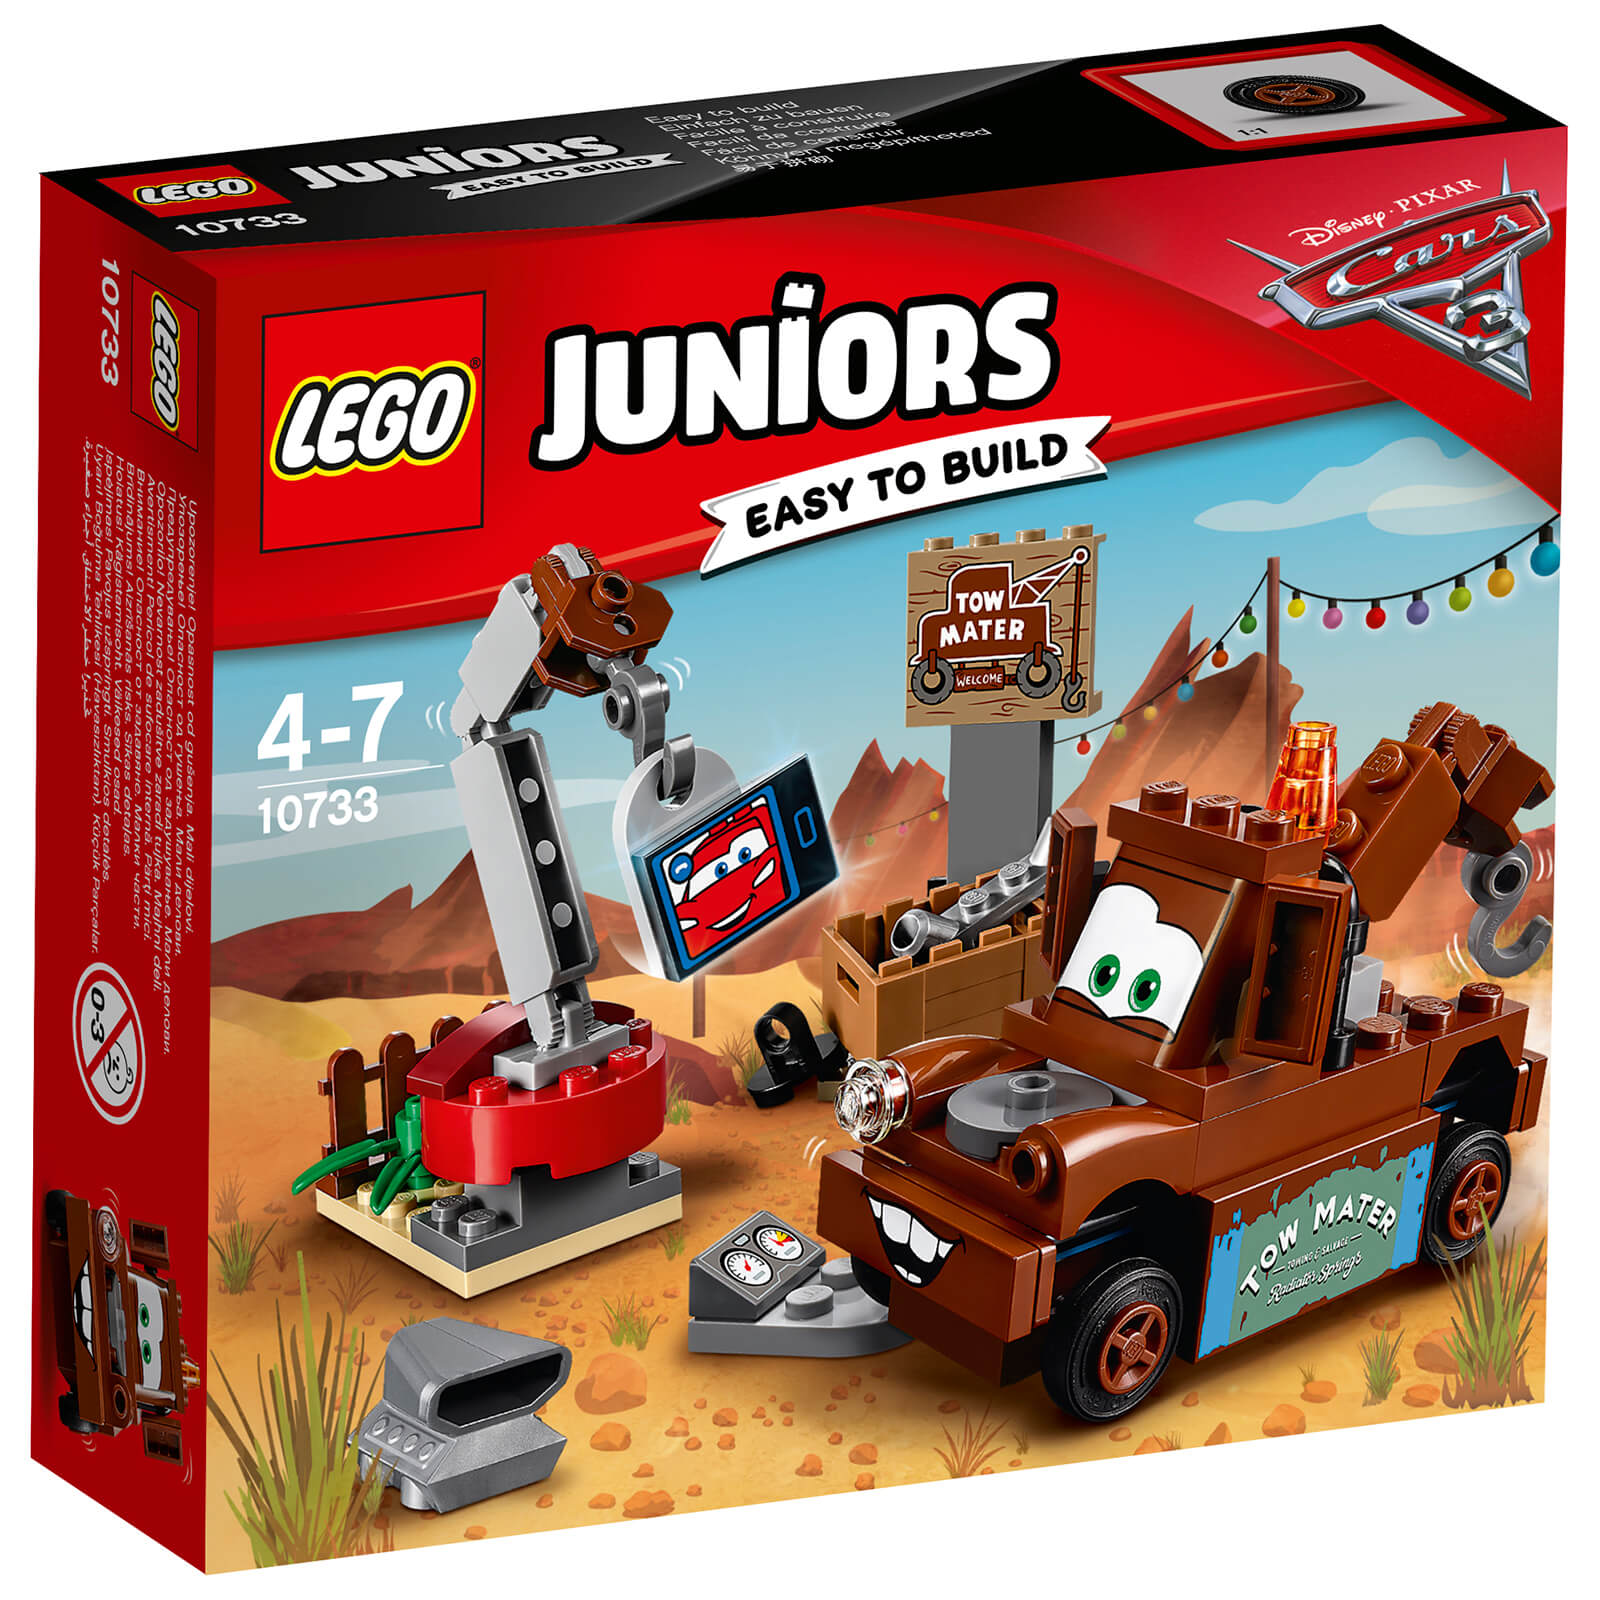 LEGO Juniors: Cars 3 Mater